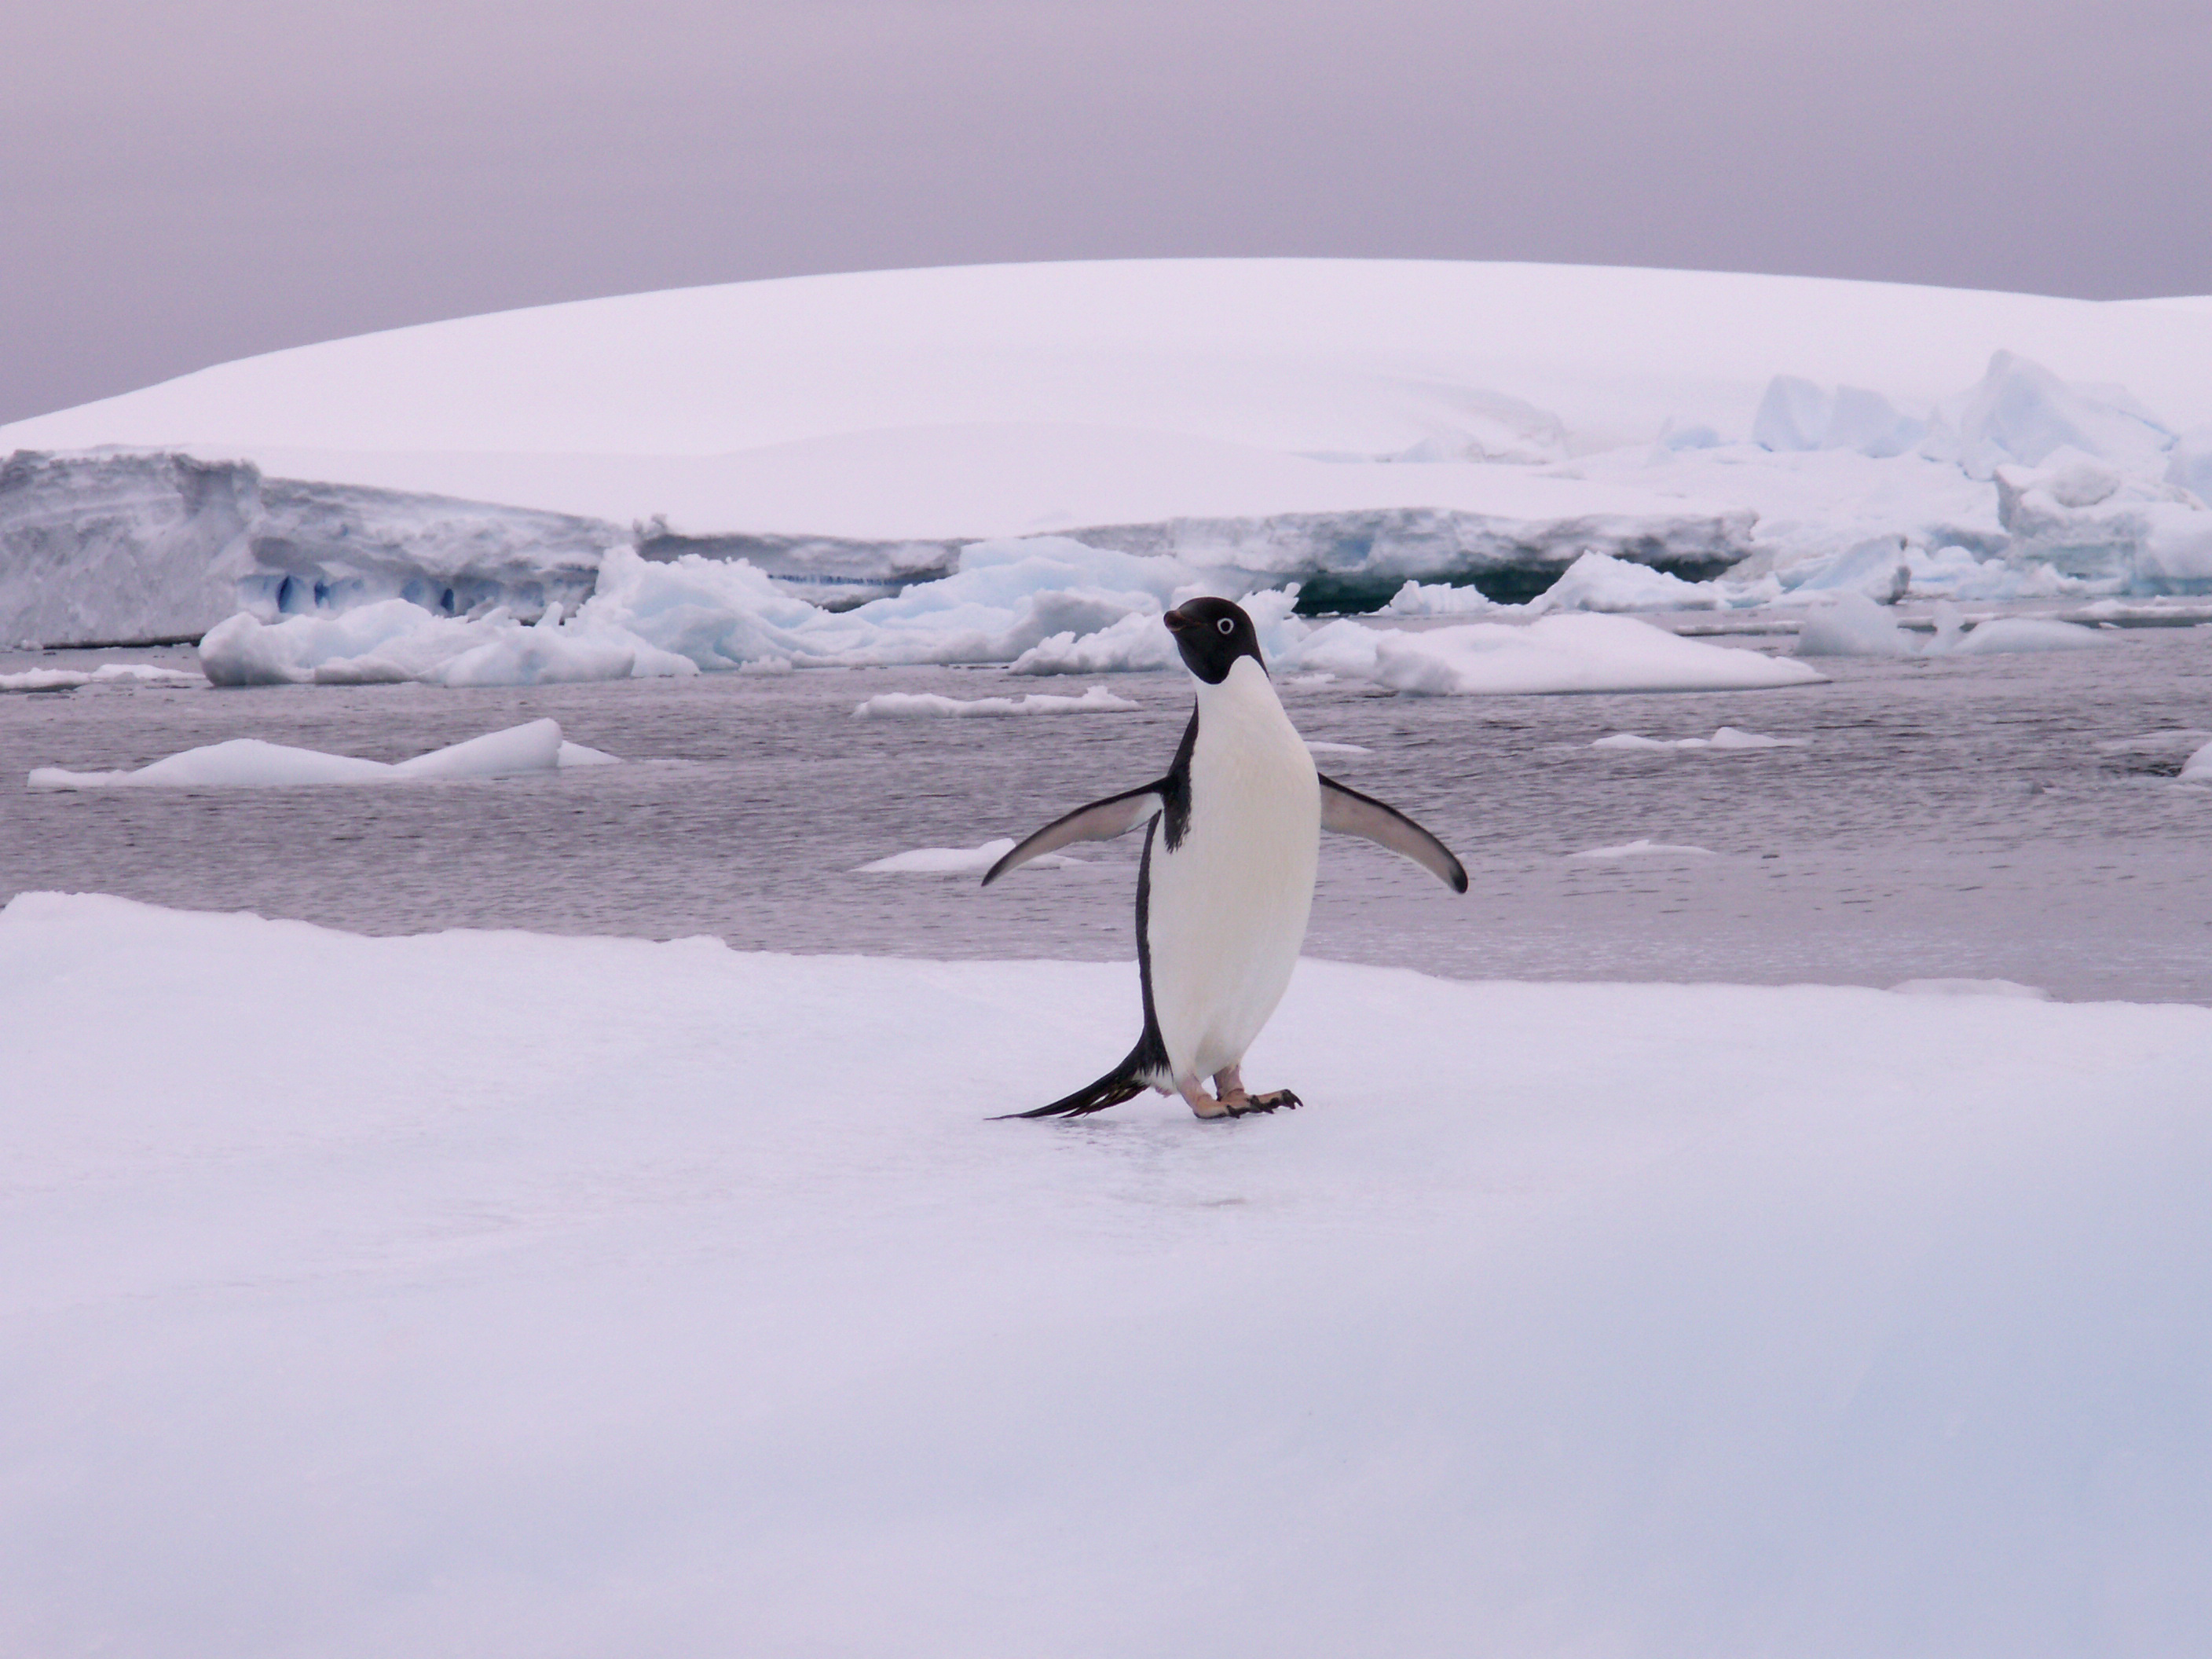 Penguin patiently waiting